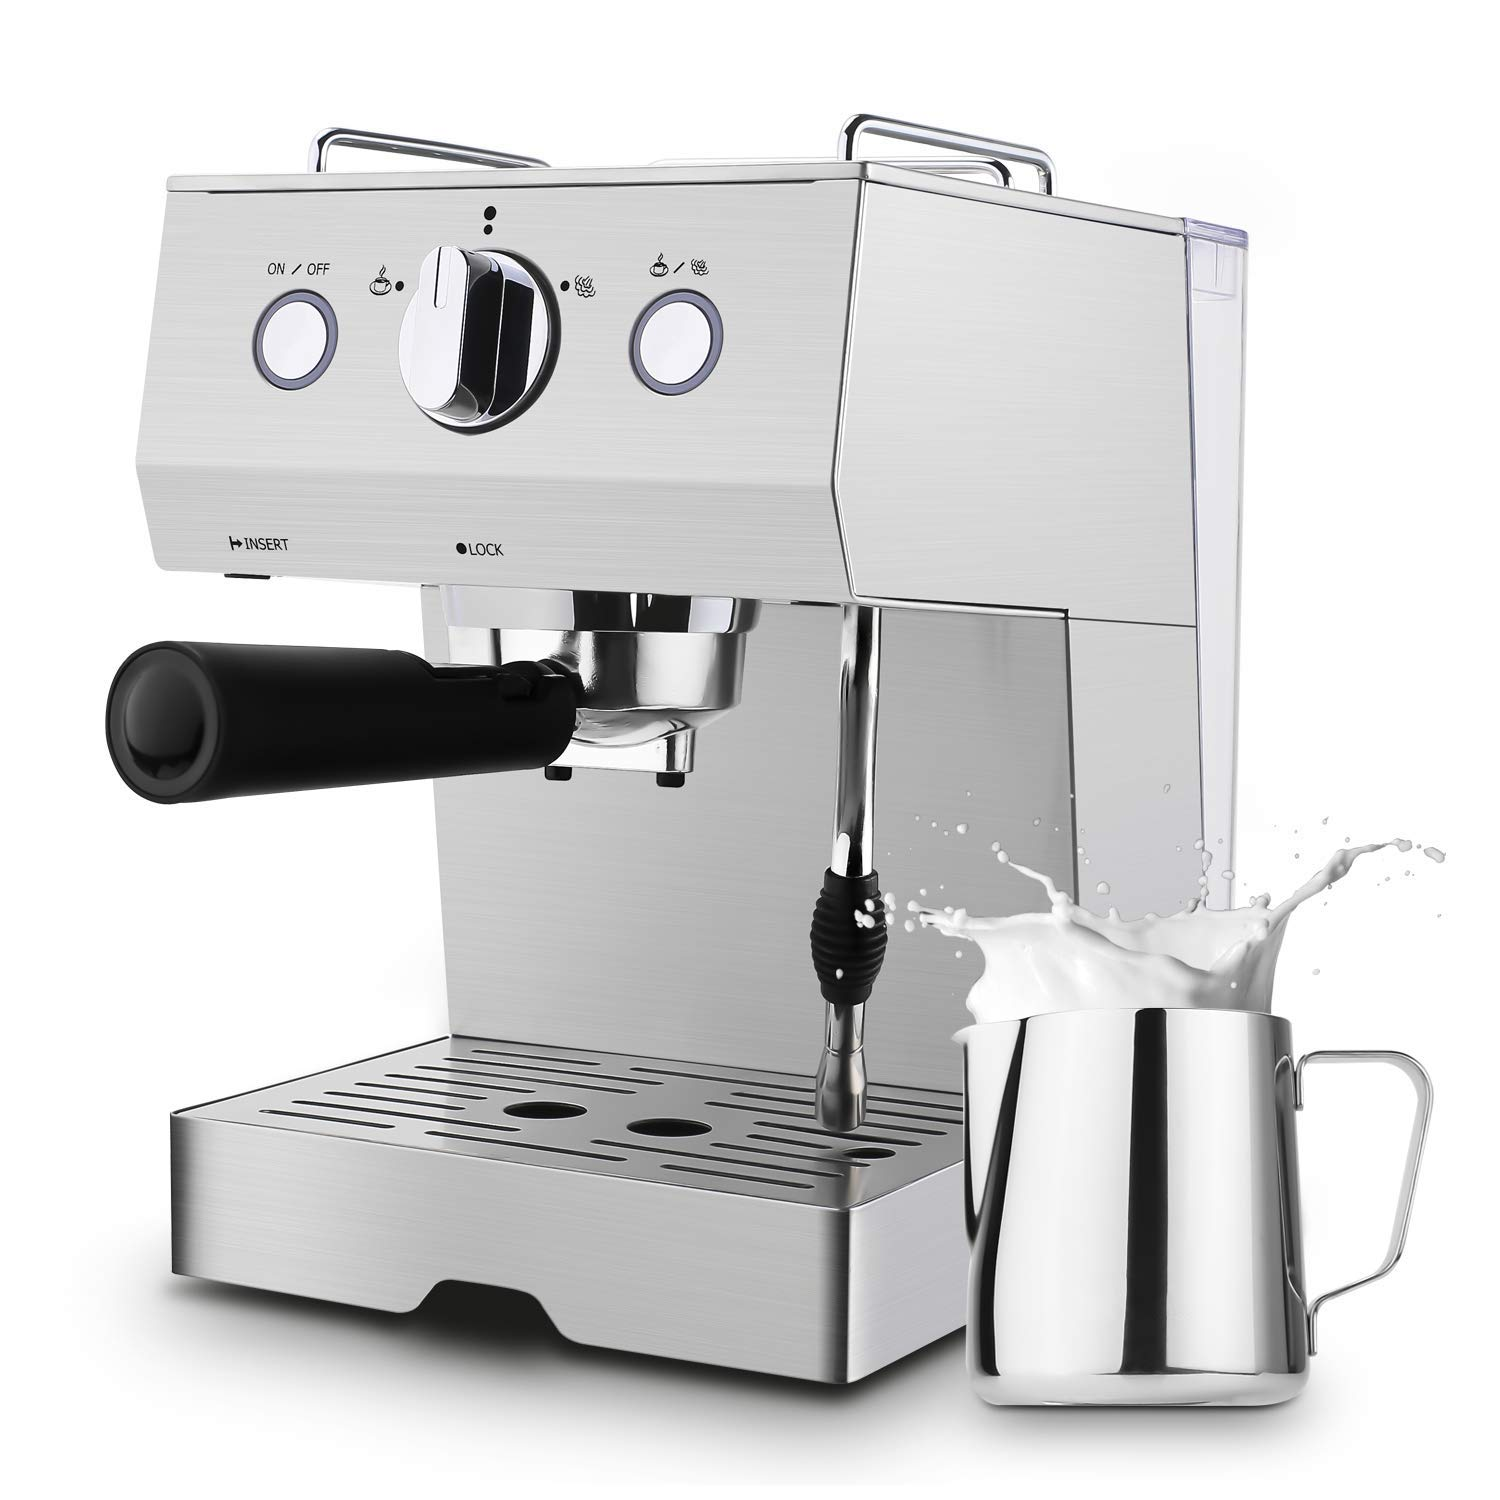 Espresso Machine Barsetto Coffee Machine 15 Bar Stainless Steel Coffee Brewer with Milk Frother Wand, Package w/Free Milk Frothing Pitcher, for Cappuccino, Latte and Mocha (Stainless Steel) (Silver)